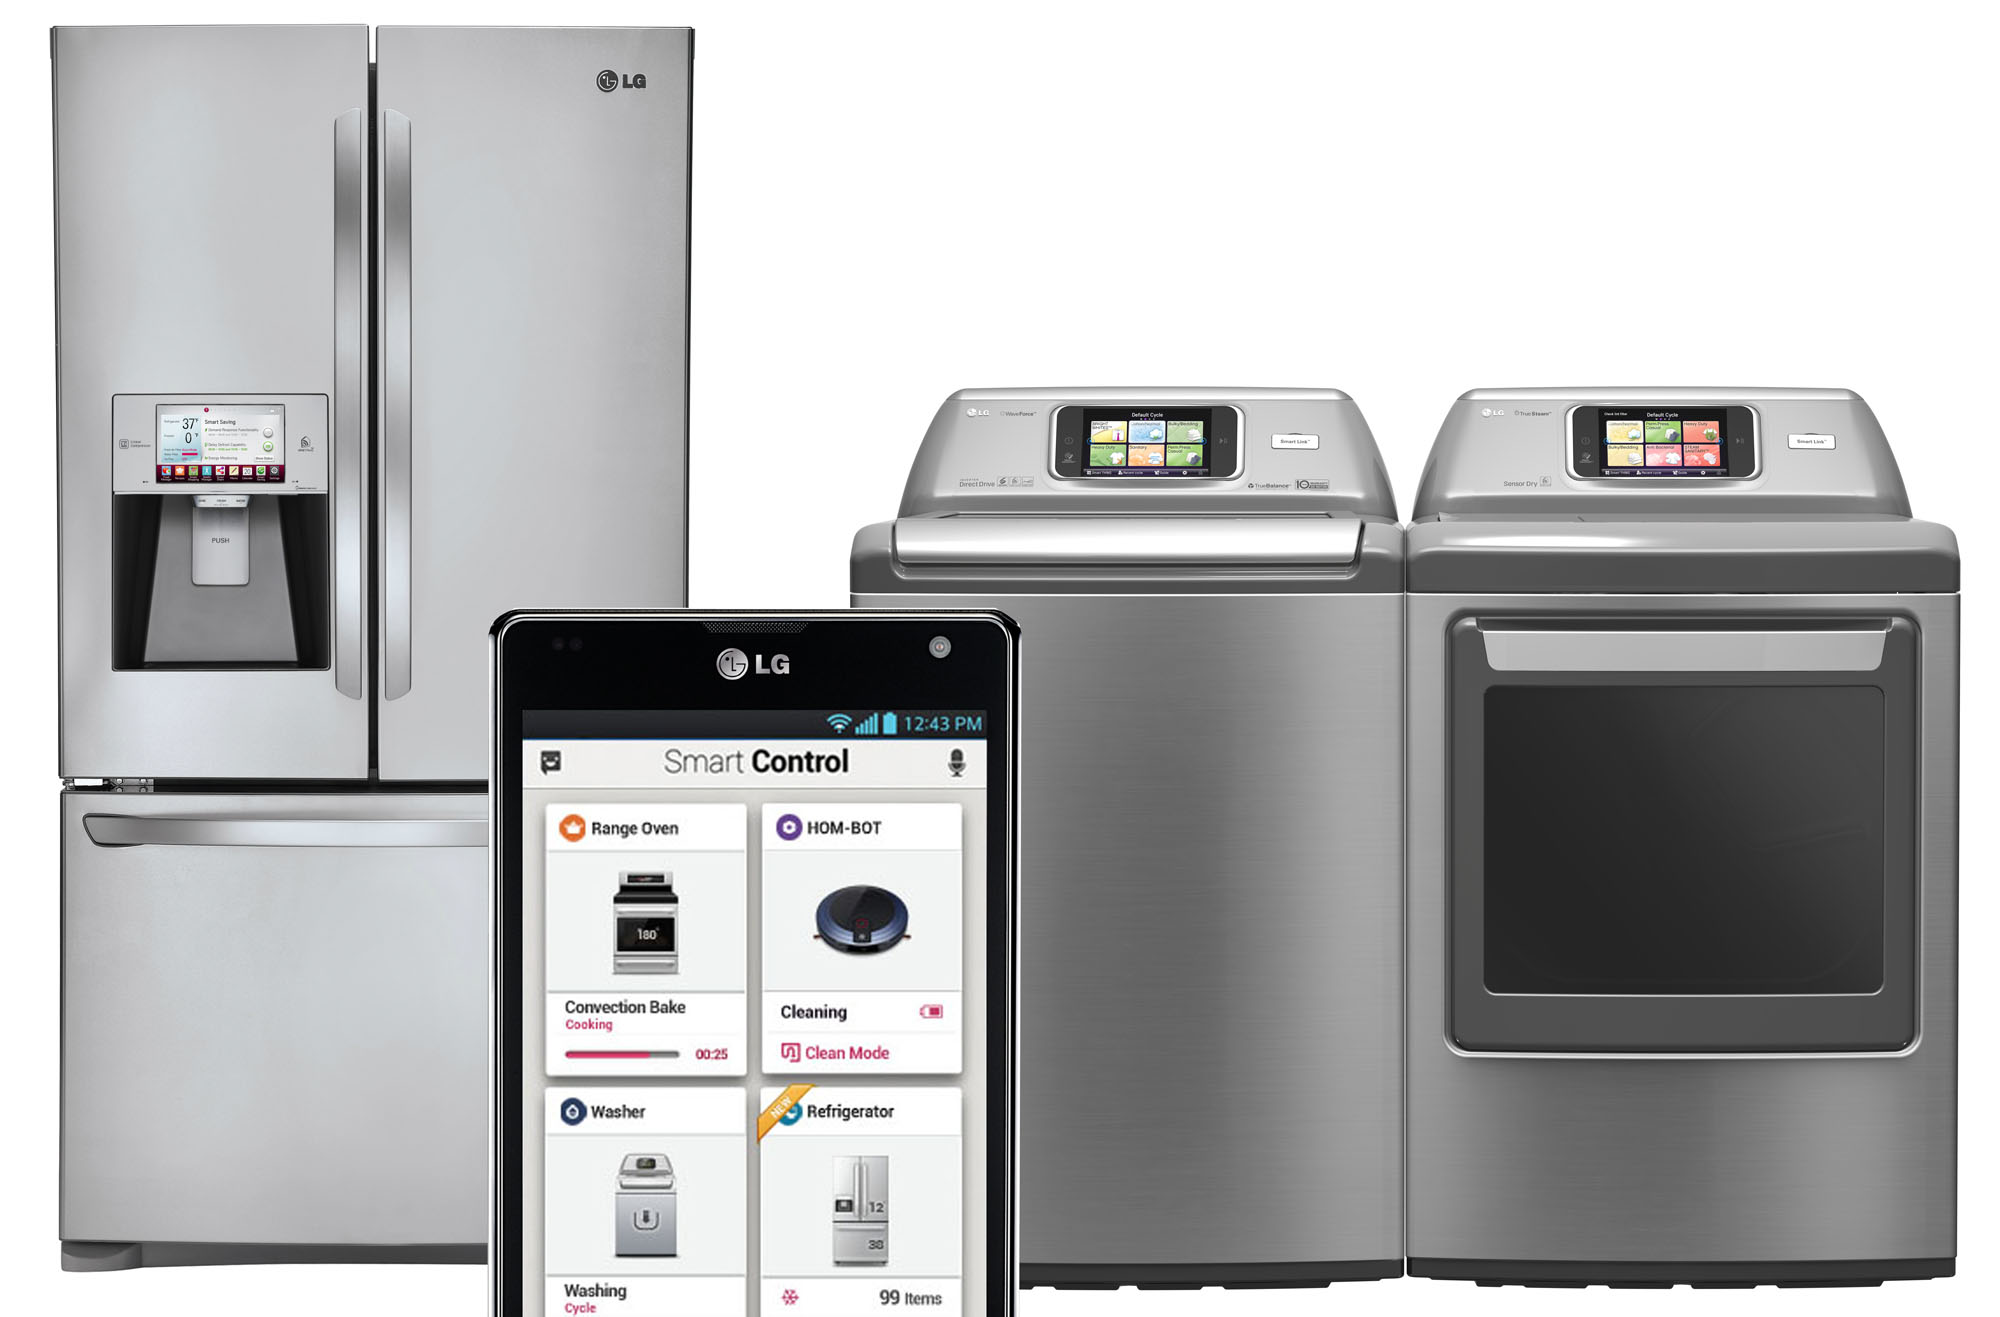 Smart phone screen showing how Smart Control app enables users to manage connected smart appliances including its refrigerator and washing machine